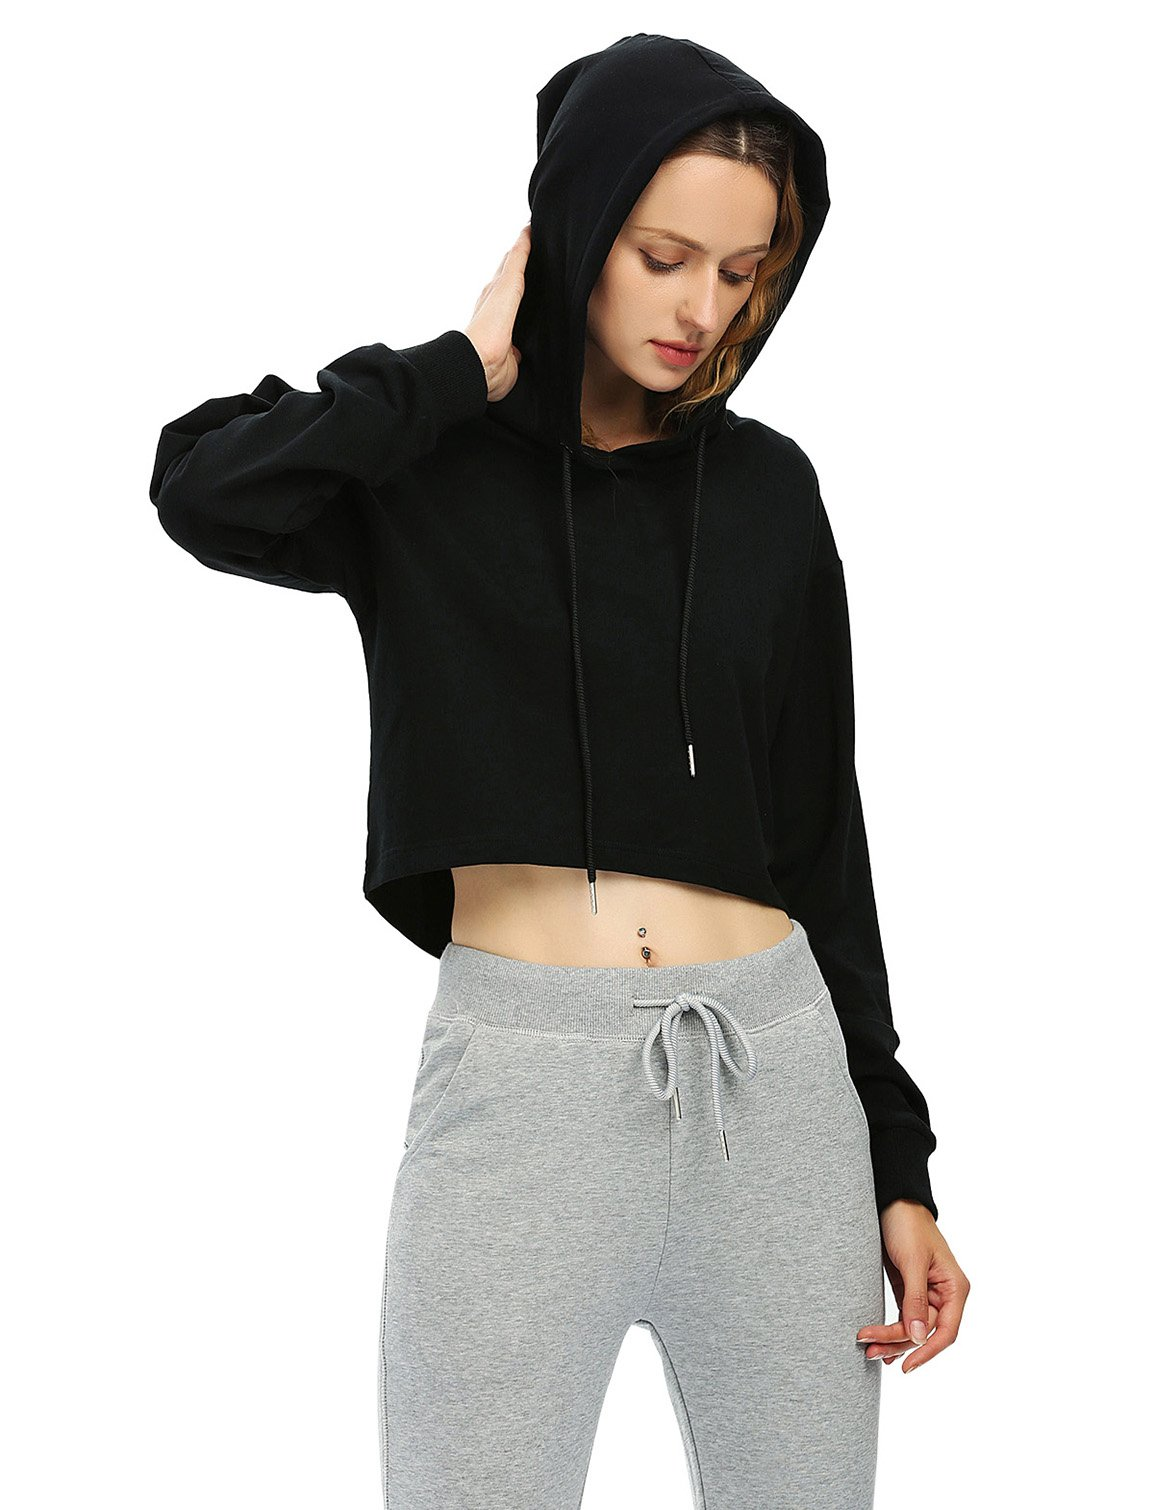 ZAN.STYLE Women's Long Sleeve Crop Top Hoodie Drawstring Pullover Sweatshirt (Medium, Hoodie-Black) by ZAN.STYLE